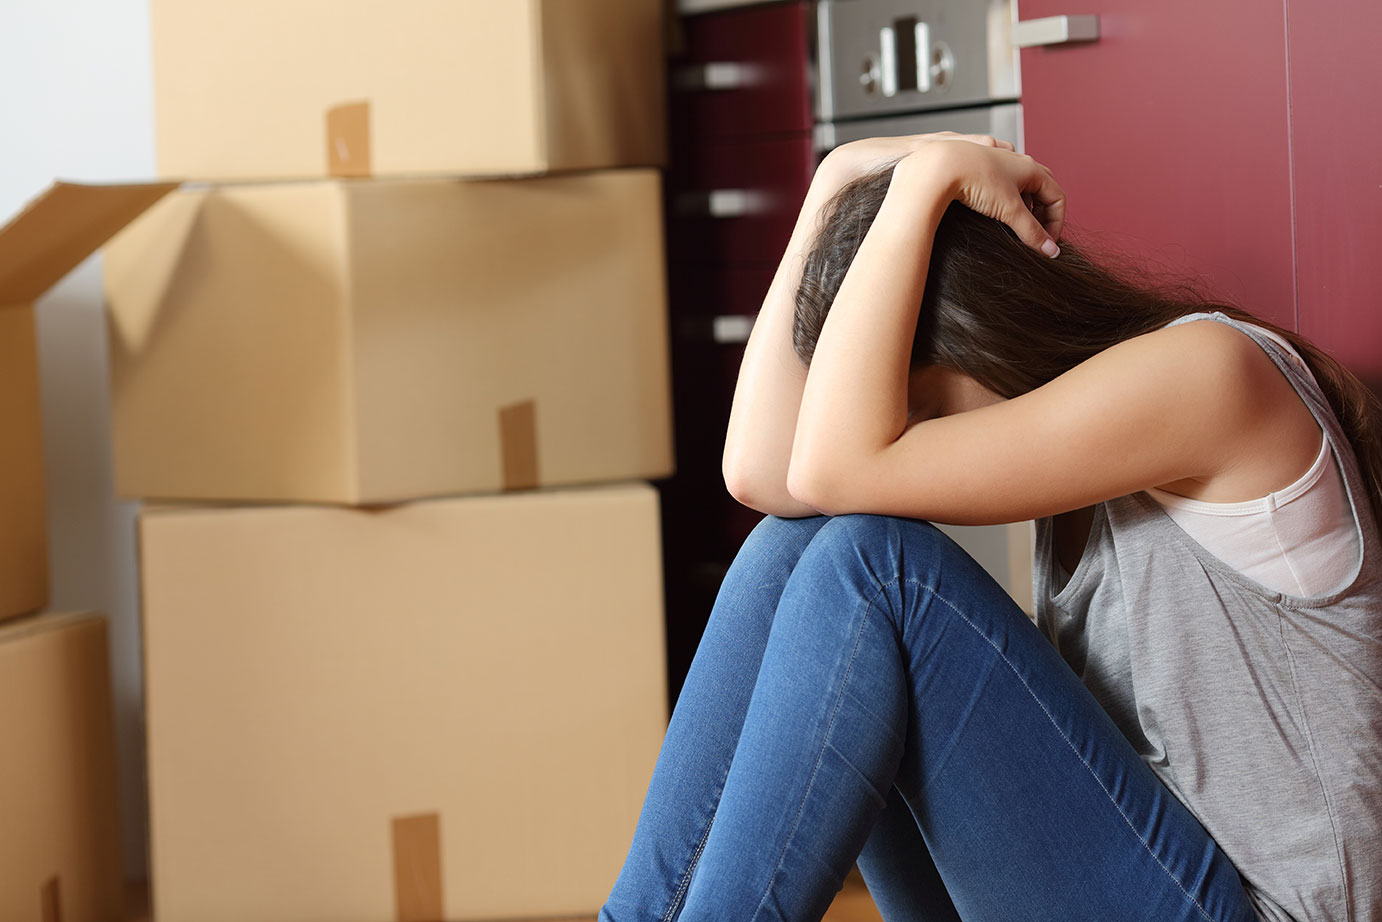 Woman Losing Home After Losing Long-Term Partner